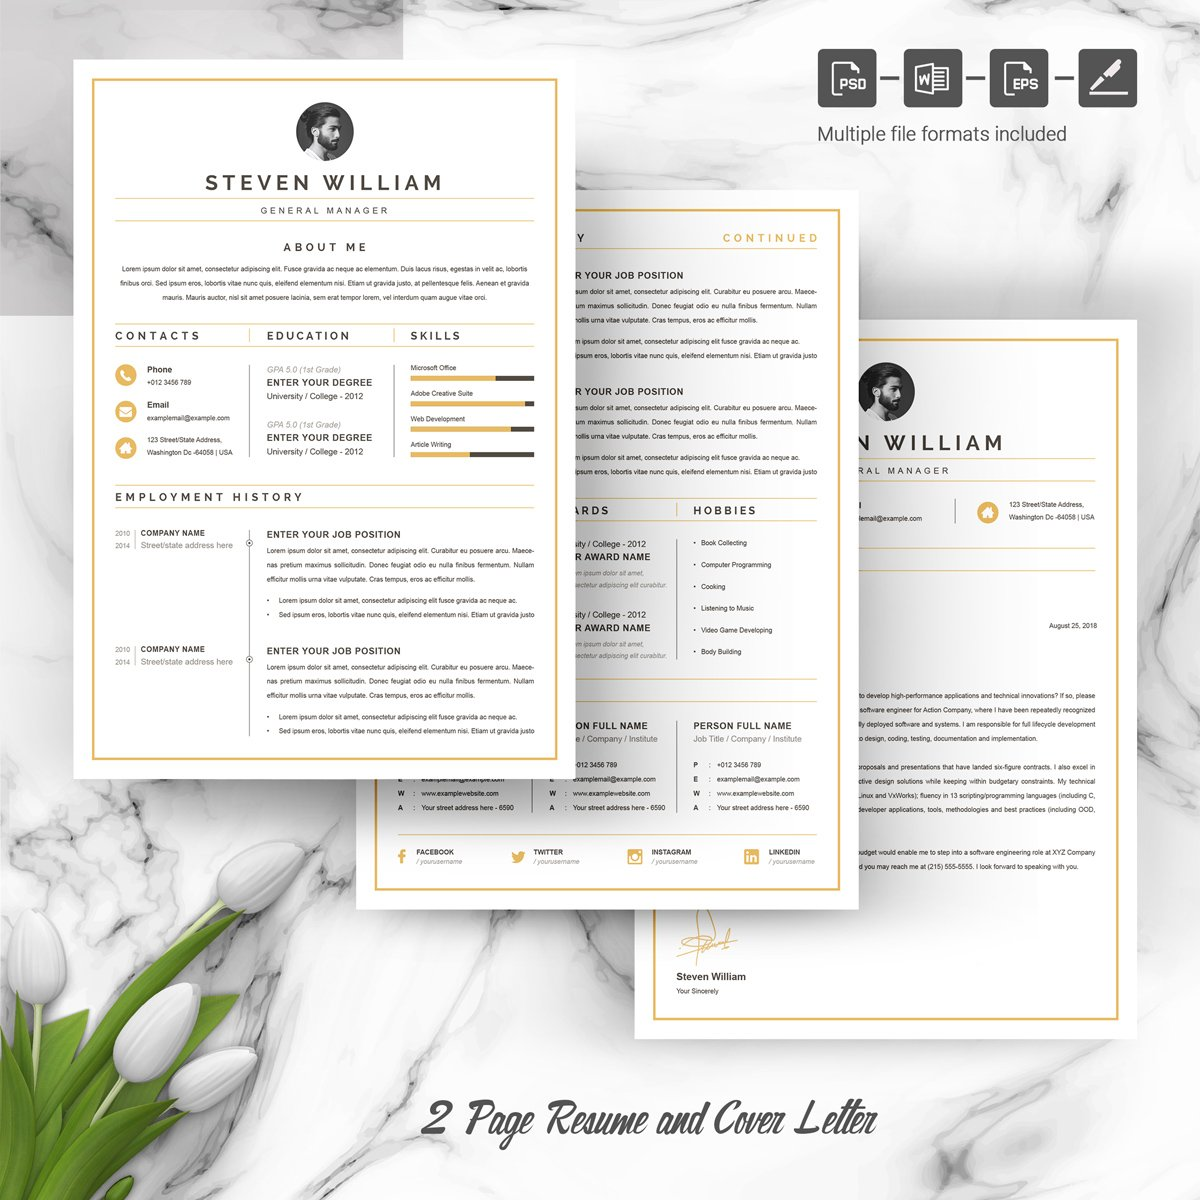 https://s3u.tmimgcdn.com/1860567-1580627614210_04_3-Pages-Free-Resume-Design-Template.jpg